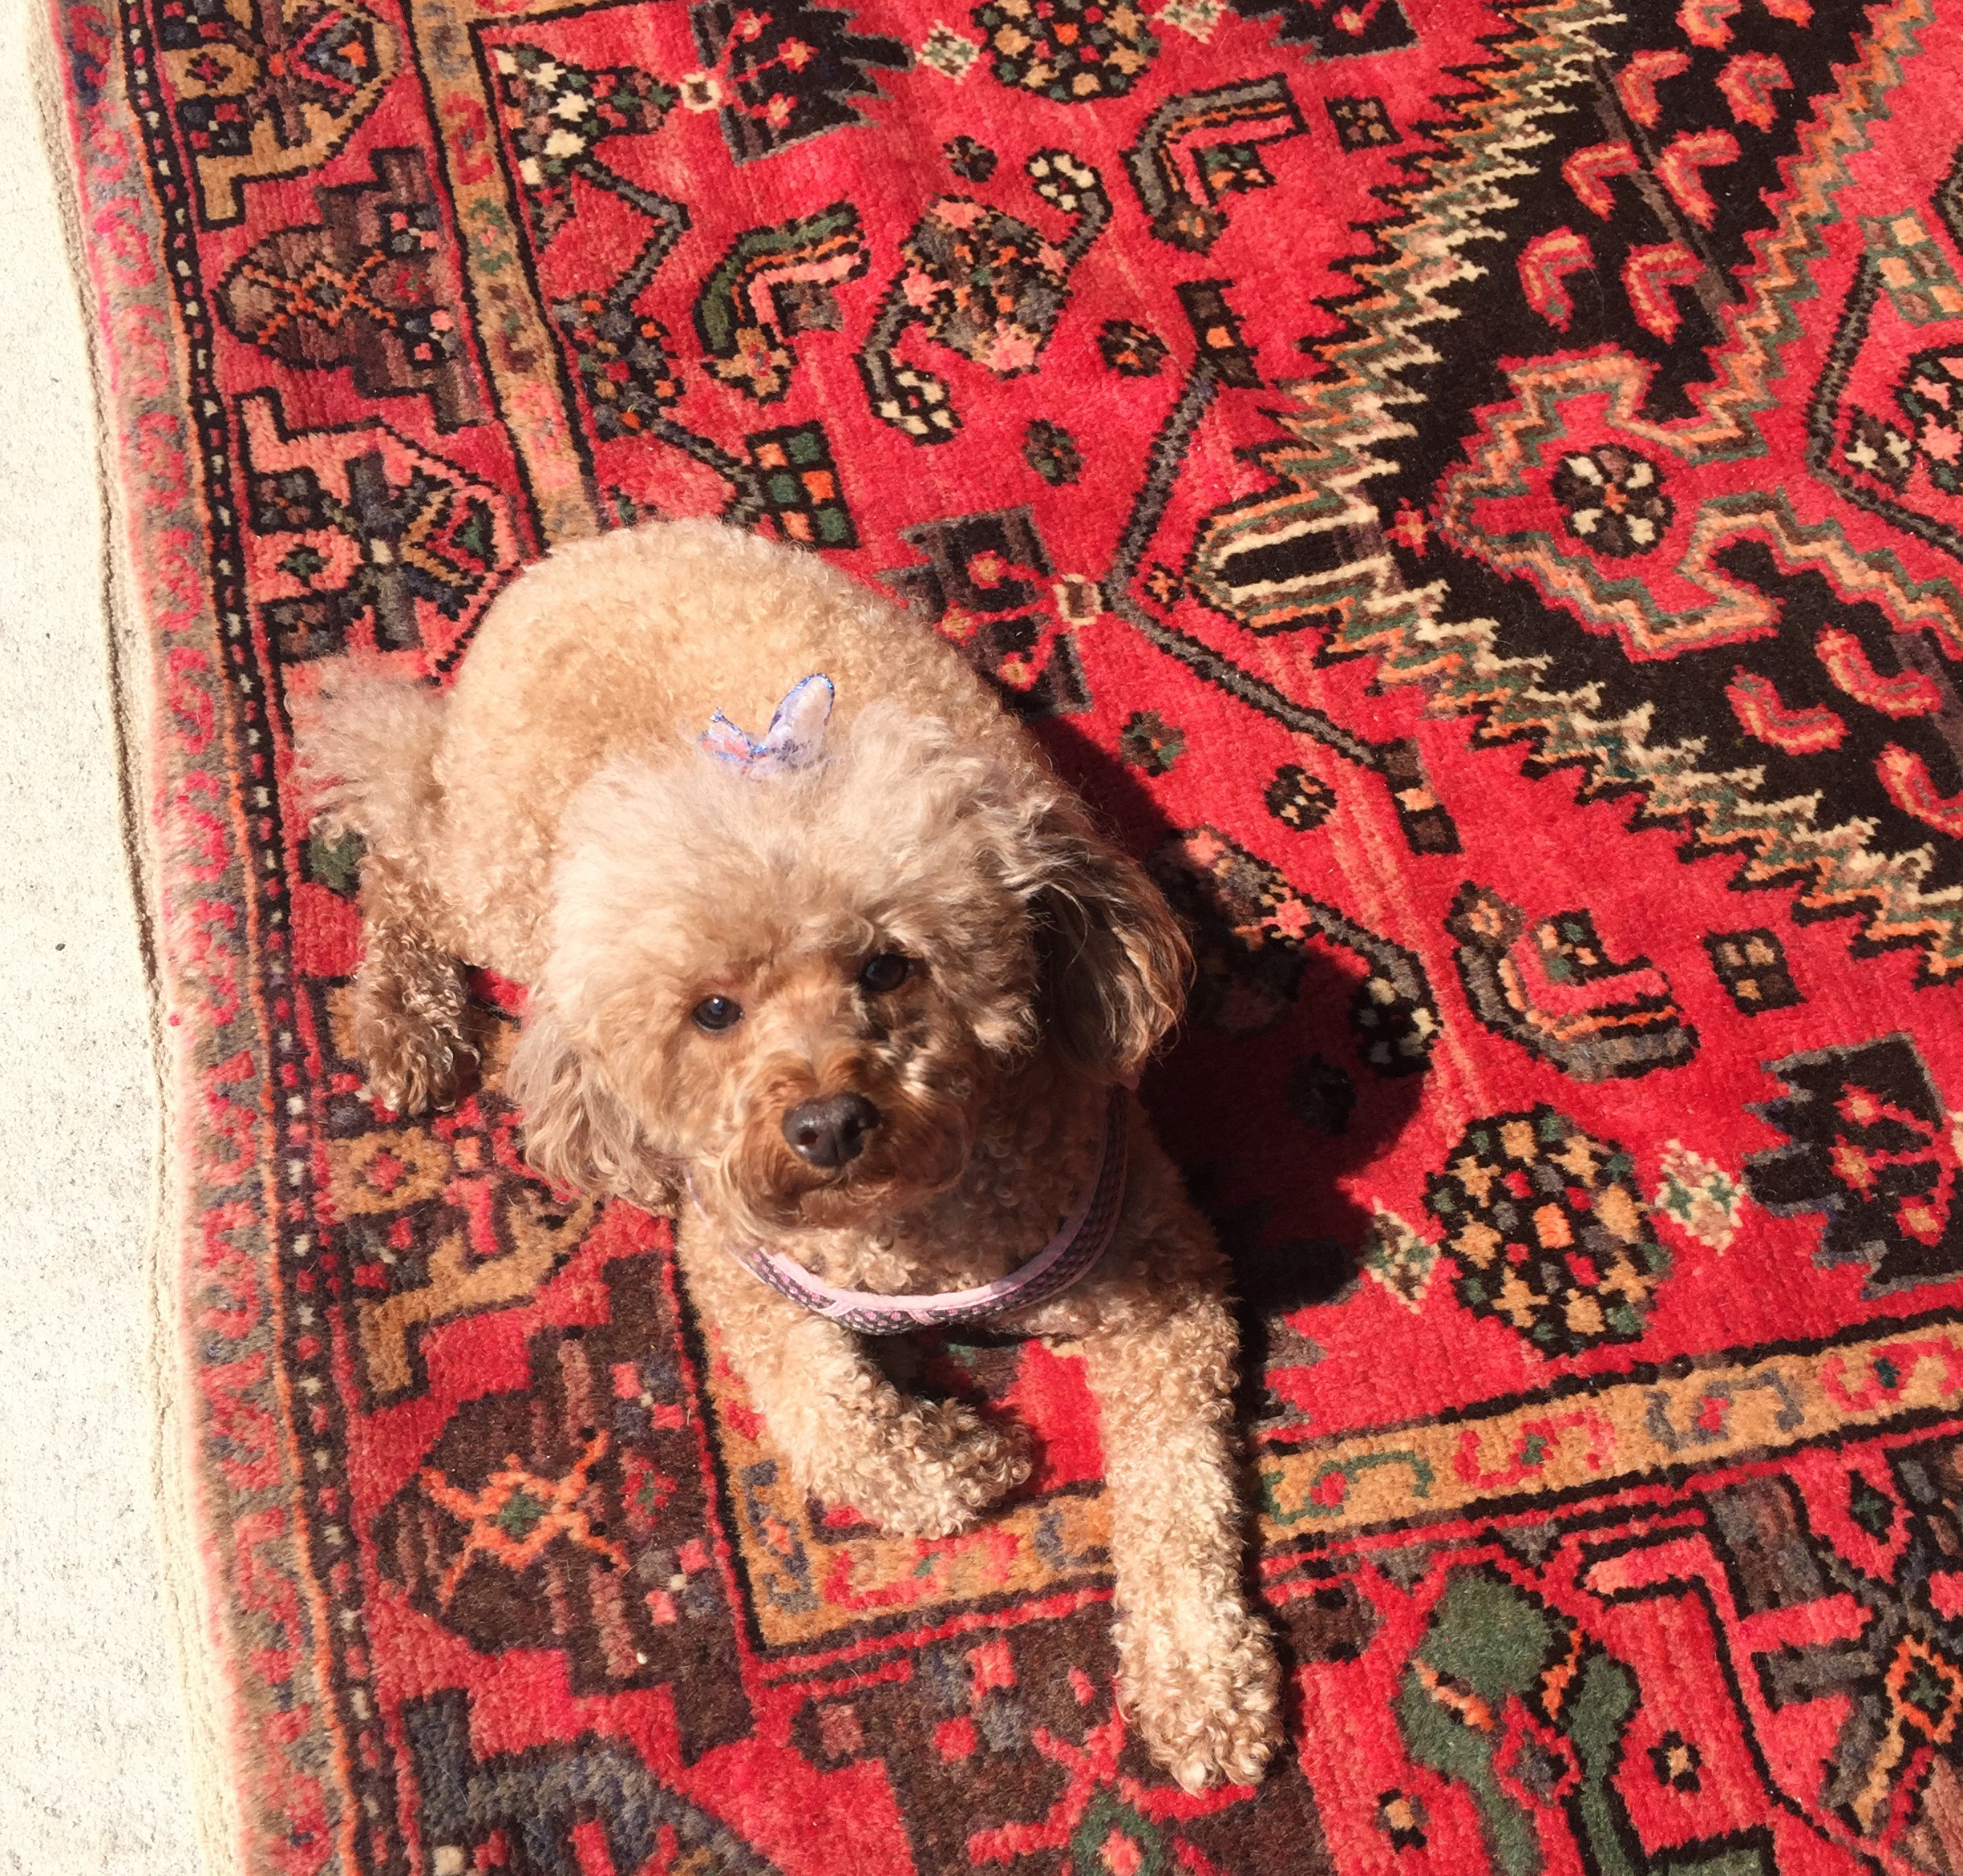 Dog Urine Oriental Rug: Pet Stain Removal For Area Rugs